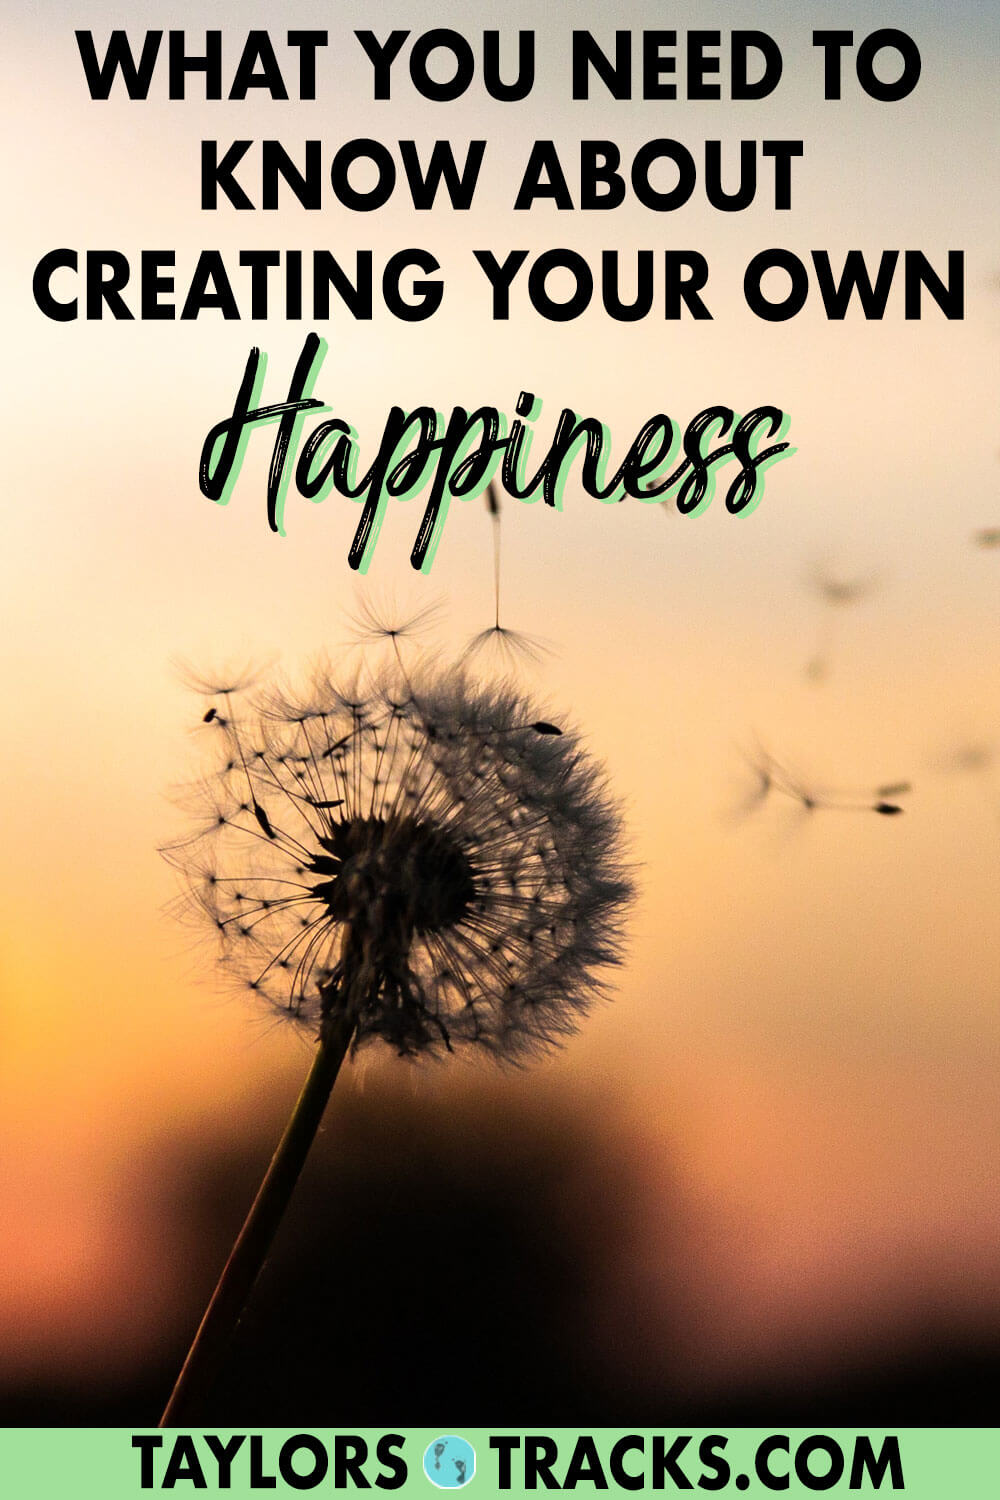 It's possible to create your own happiness. In fact, it's the only way to become happy. Happiness is an inside job and it's simple when you know exactly what to focus on. Learn how to be happy with these simple happiness tips. Click to find out now!